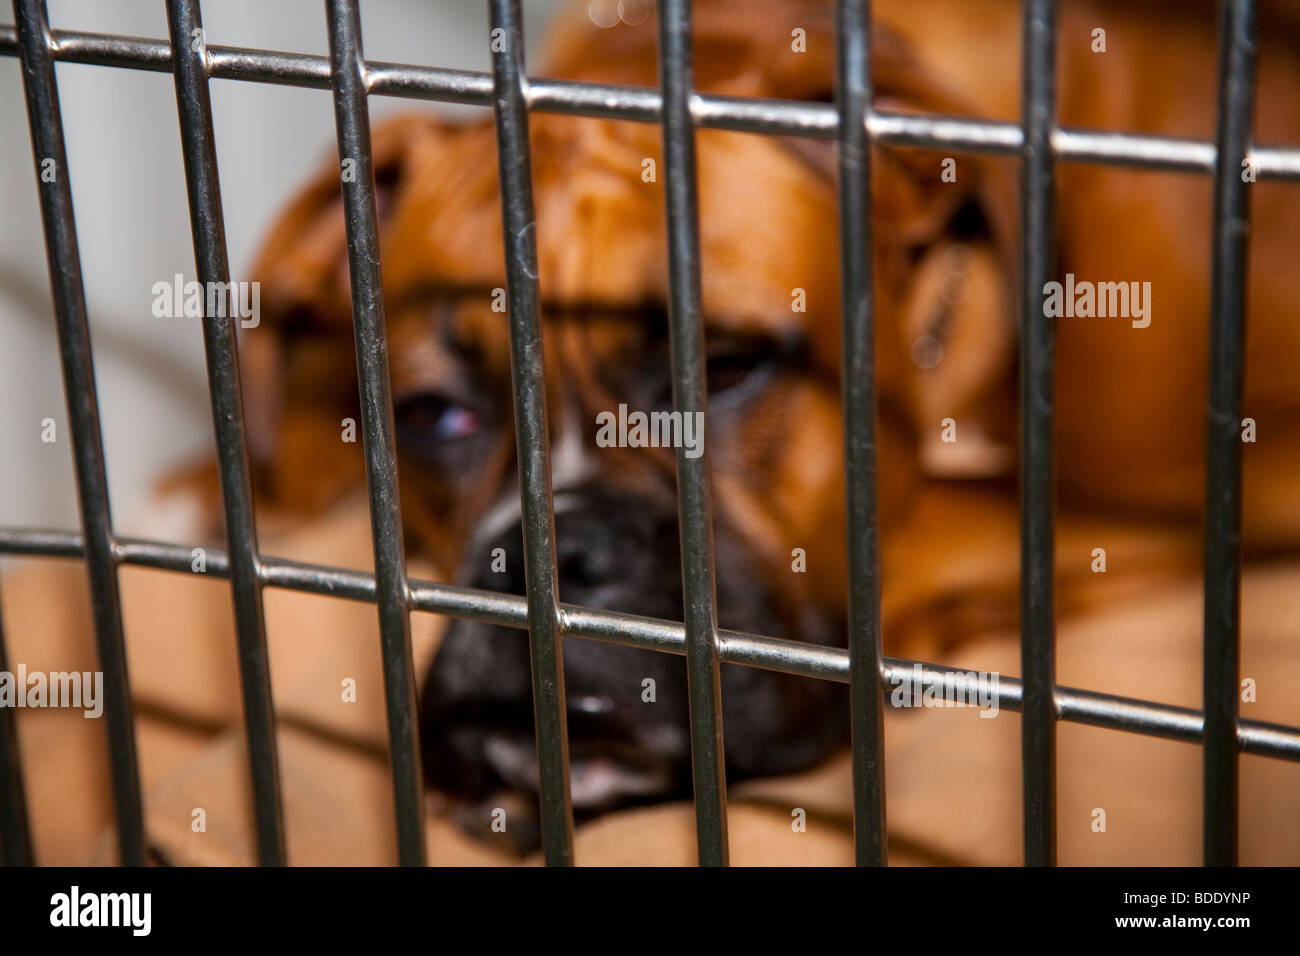 Boxer Dog Recovering from Anaesthetic in Veterinary Clinic - Stock Image